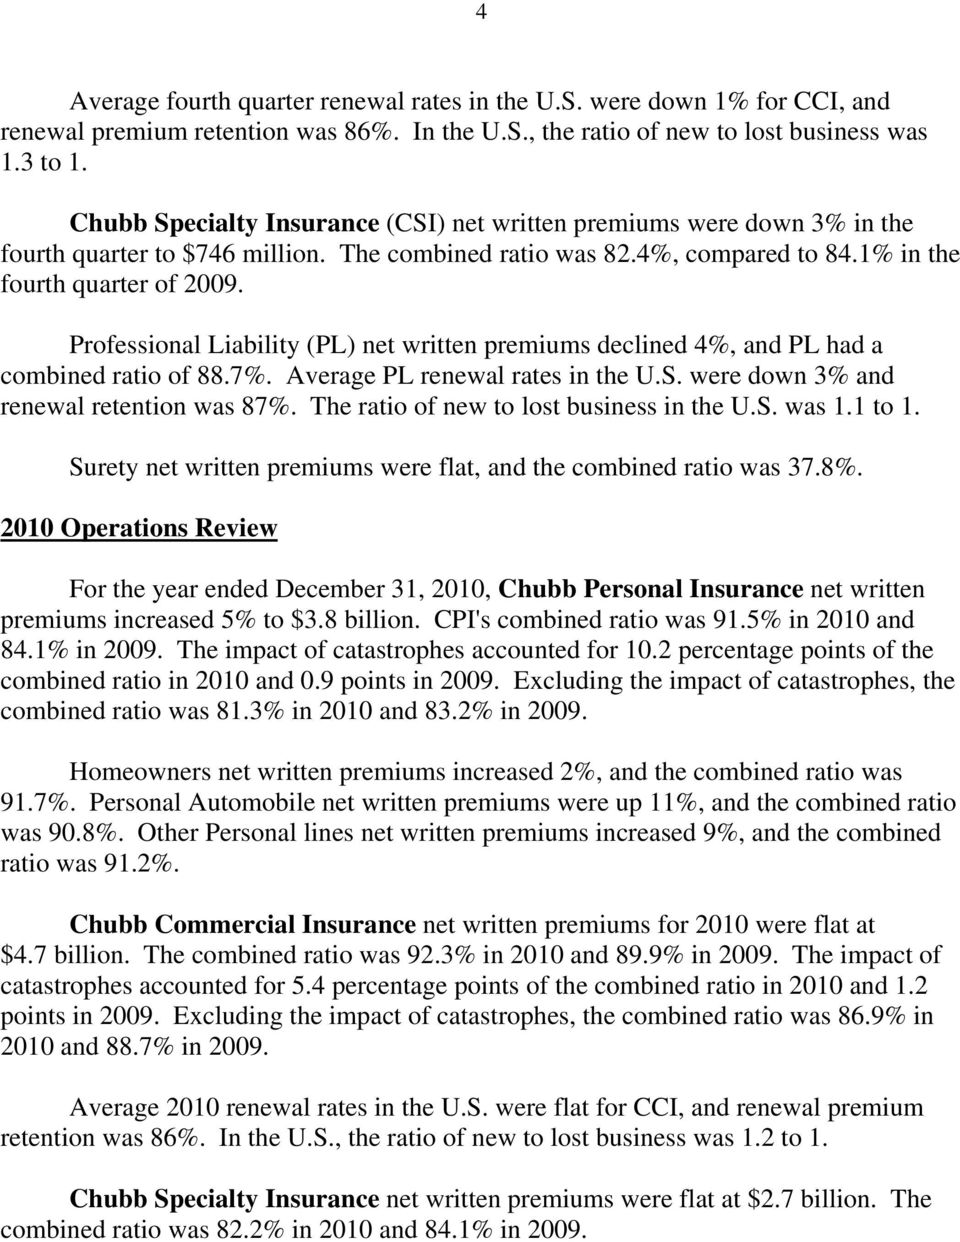 Professional Liability (PL) net written premiums declined 4%, and PL had a combined ratio of 88.7%. Average PL renewal rates in the U.S. were down 3% and renewal retention was 87%.